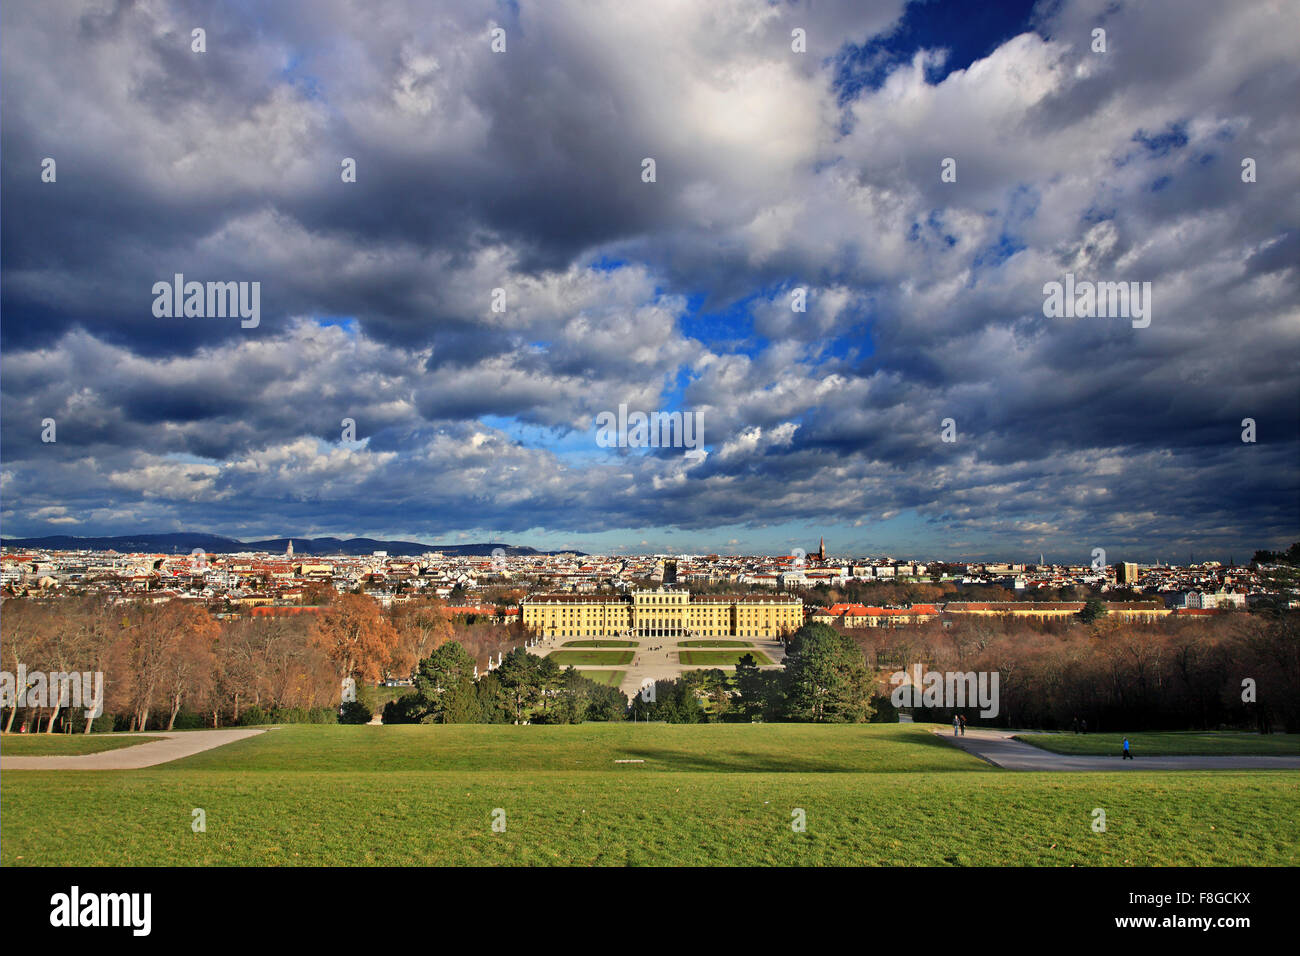 View of the Schönbrunn, summer palace of the Habsburgs and the city of Vienna from the Gloriette. - Stock Image